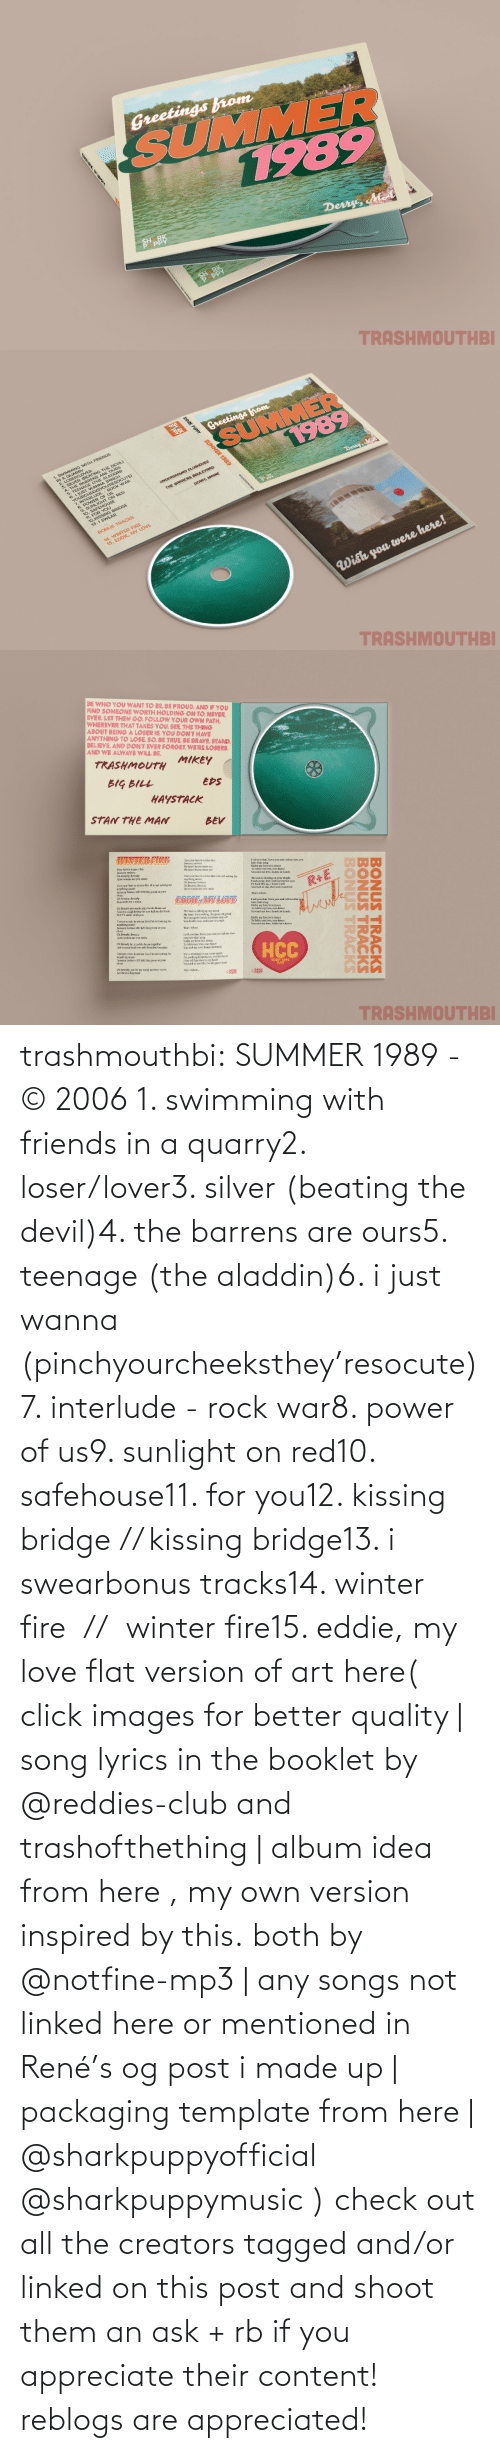 Fire: trashmouthbi: SUMMER 1989 - © 2006 1. swimming with friends in a quarry2. loser/lover3. silver (beating the devil)4. the barrens are ours5. teenage (the aladdin)6. i just wanna (pinchyourcheeksthey'resocute)7. interlude - rock war8. power of us9. sunlight on red10. safehouse11. for you12. kissing bridge // kissing bridge13. i swearbonus tracks14. winter fire  //  winter fire15. eddie, my love flat version of art here( click images for better quality | song lyrics in the booklet by @reddies-club​ and trashofthething | album idea from here , my own version inspired by this. both by @notfine-mp3​ | any songs not linked here or mentioned in René's og post i made up | packaging template from here | @sharkpuppyofficial​ @sharkpuppymusic​ ) check out all the creators tagged and/or linked on this post and shoot them an ask + rb if you appreciate their content! reblogs are appreciated!